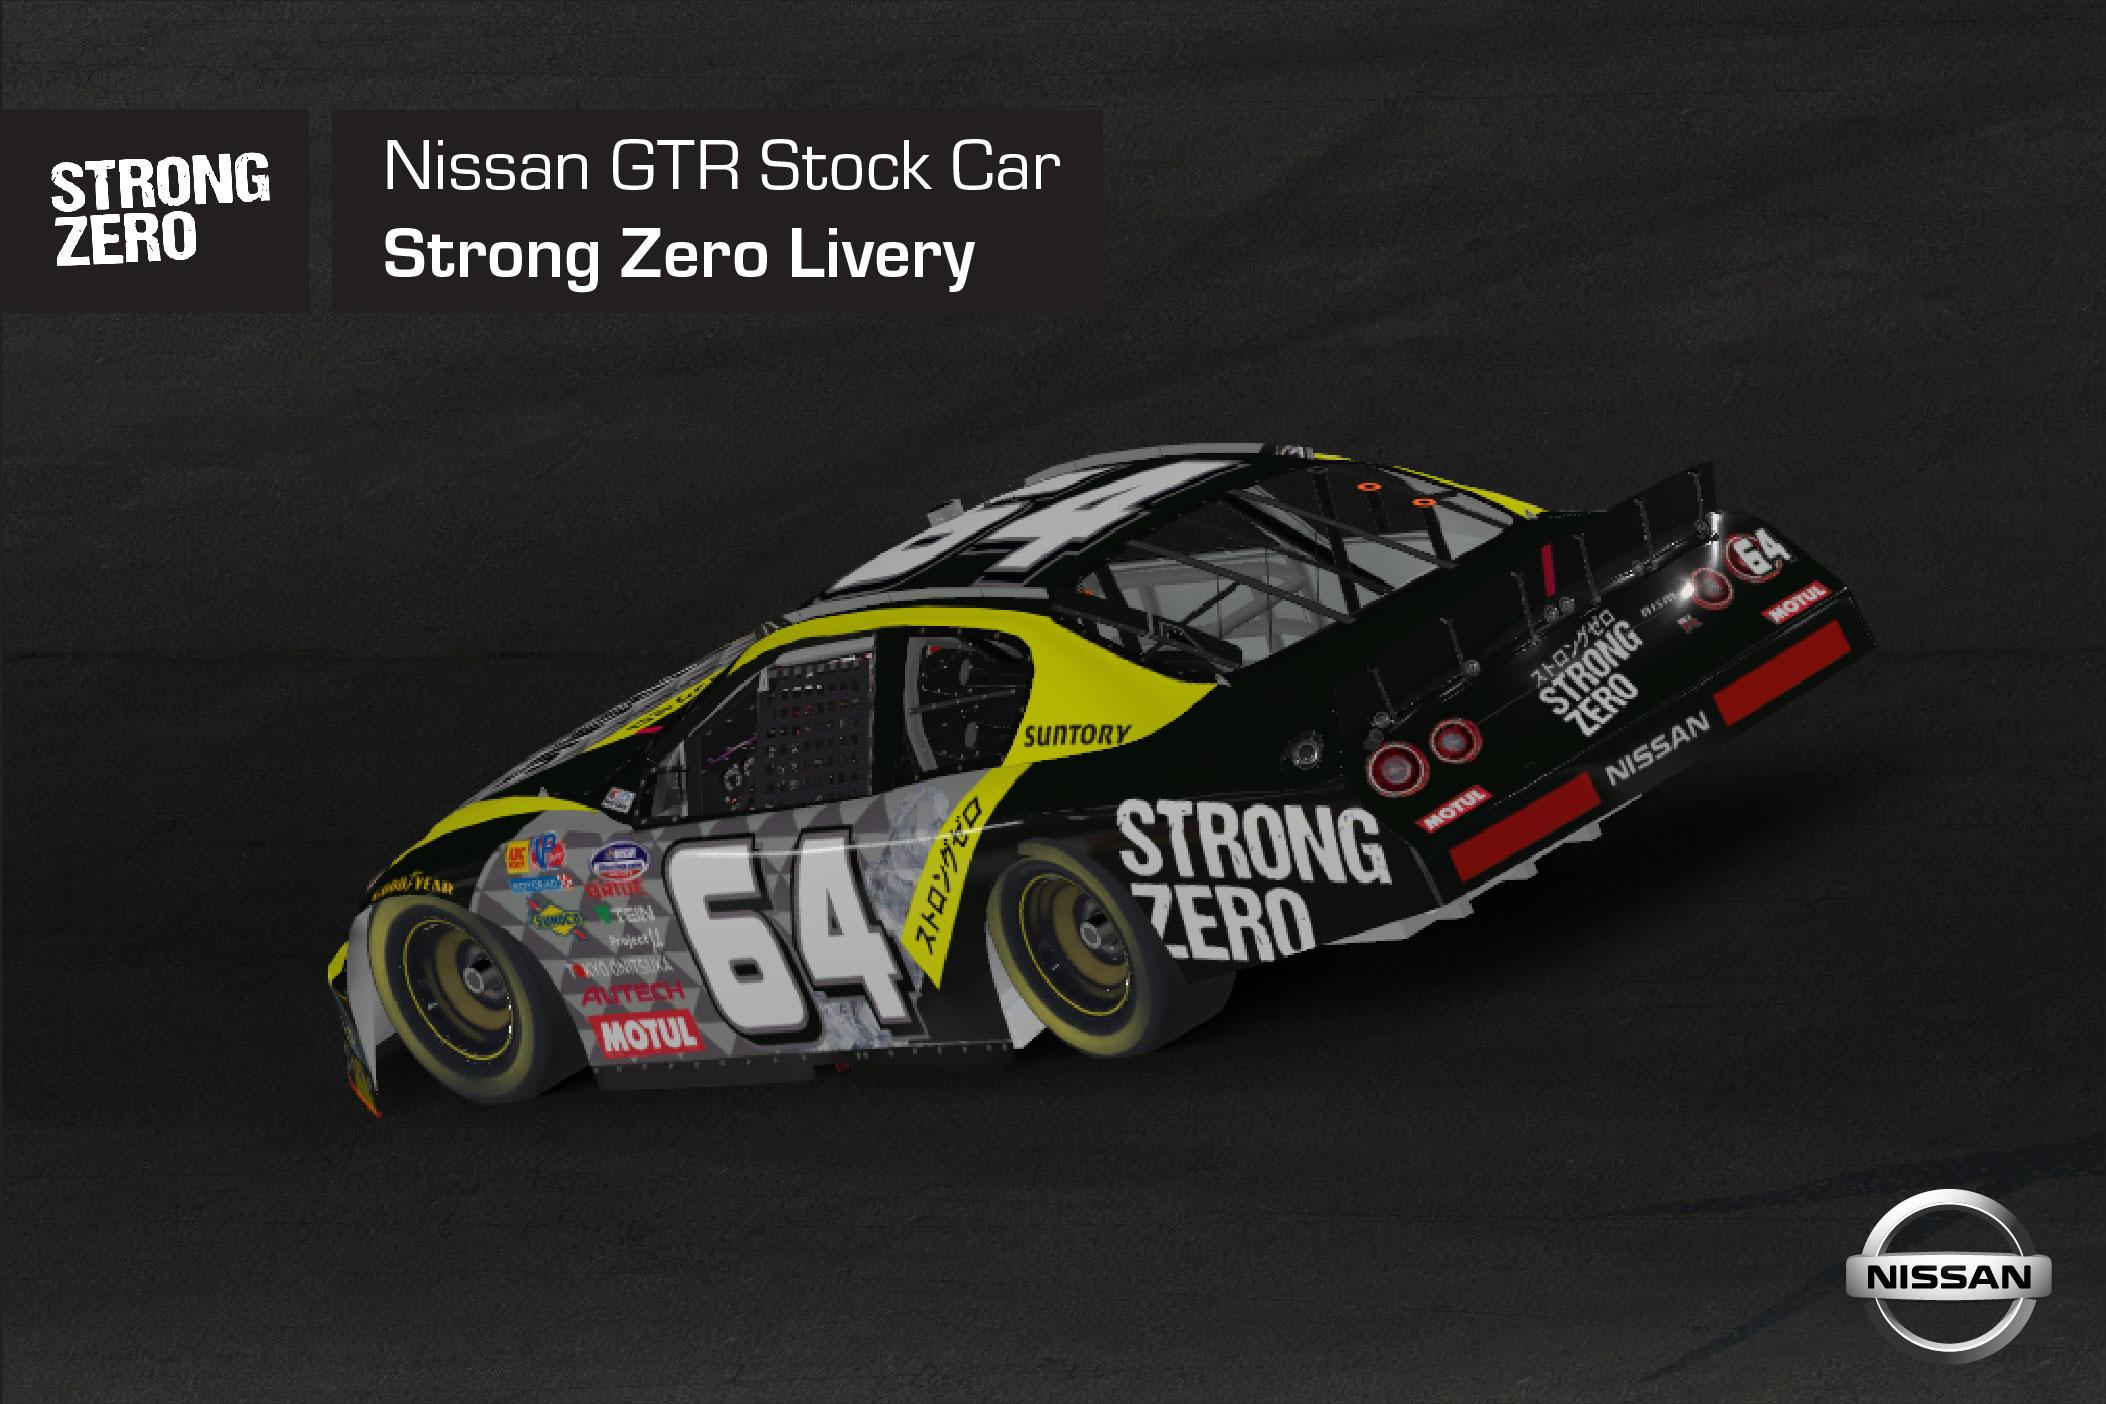 Preview of Nissan GTR Stock Car Strong Zero by Arthur T.